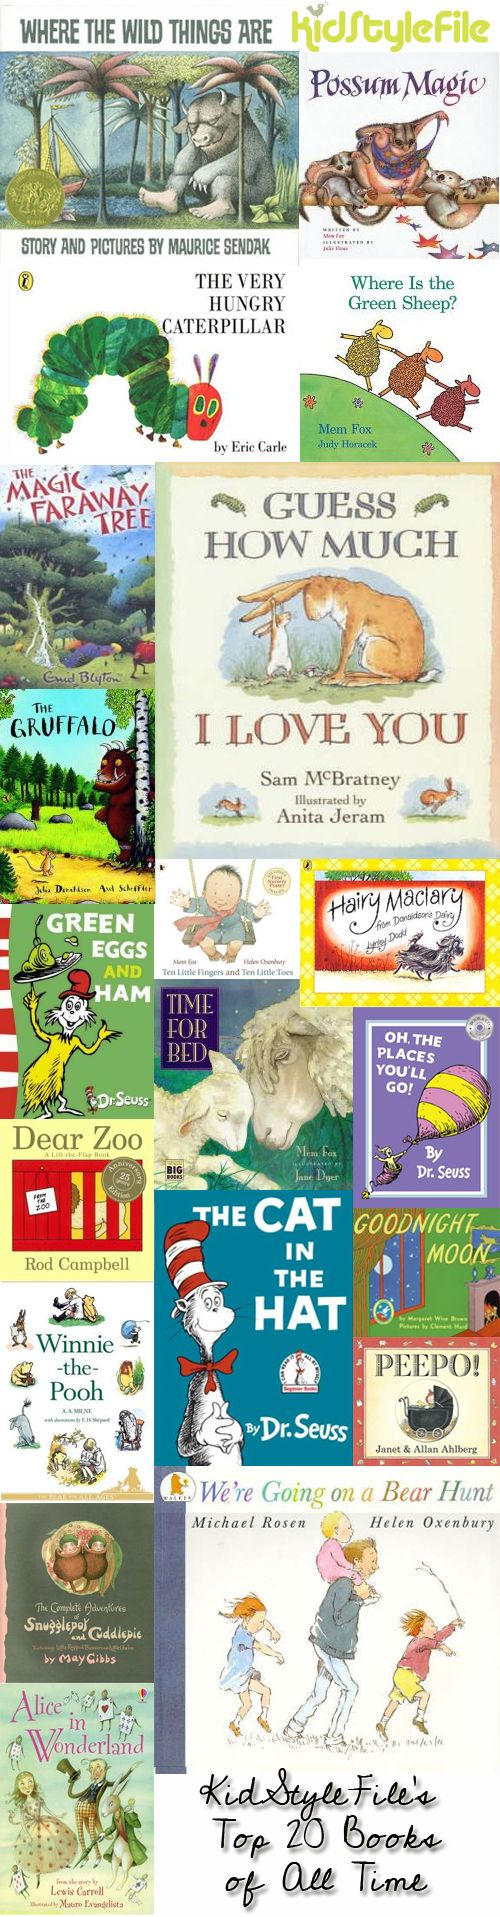 Here at KidStyleFile we know you love books, so of course when we released theKidStyleFile 5th Annual Reader Survey last year we knew it was the perfect vehic